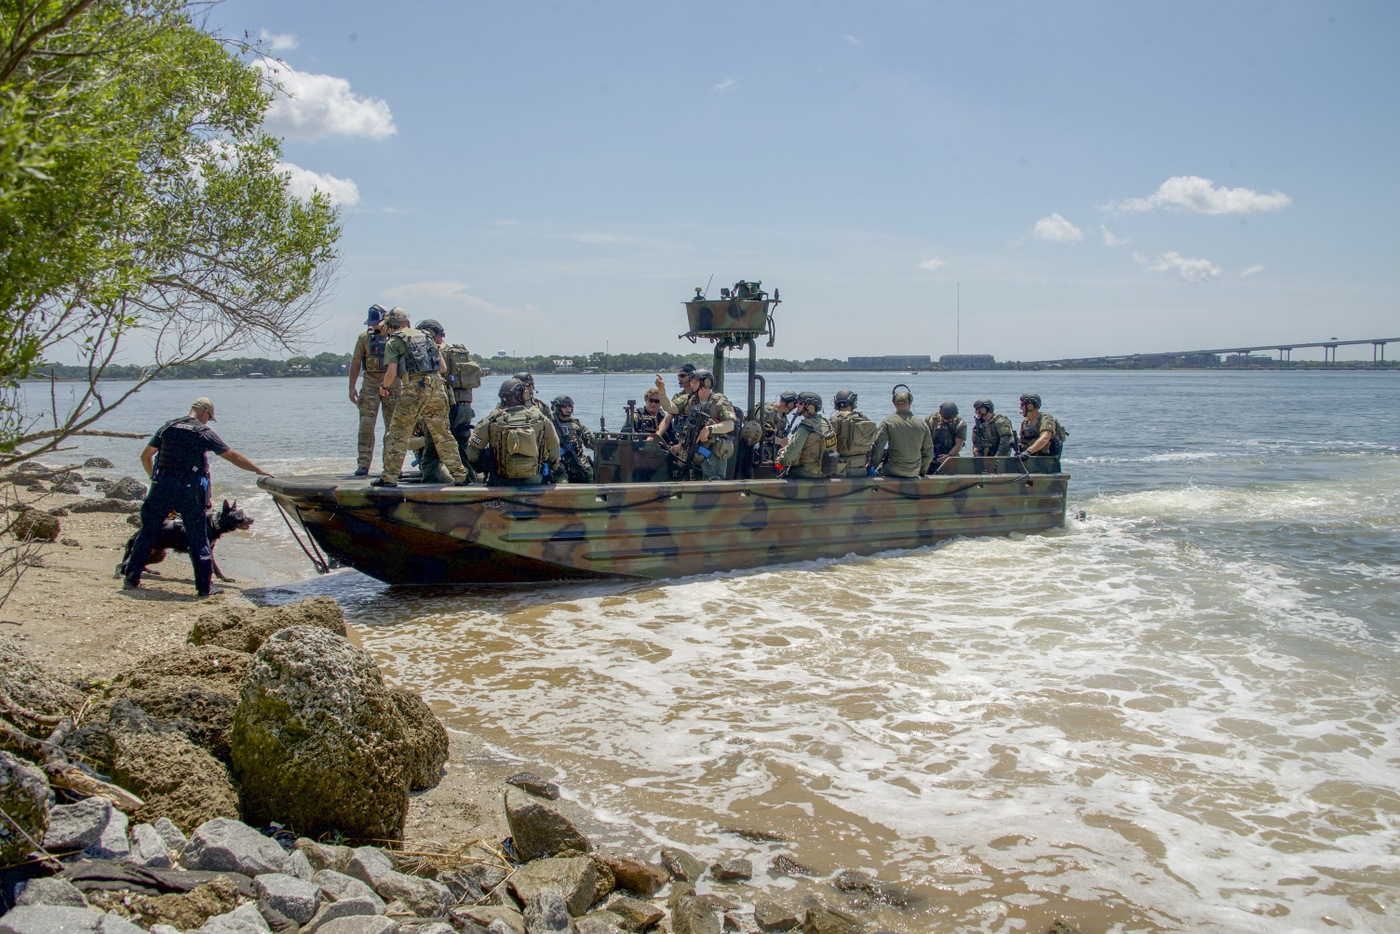 HRT Training: SWAT Team Boards Riverine Boat